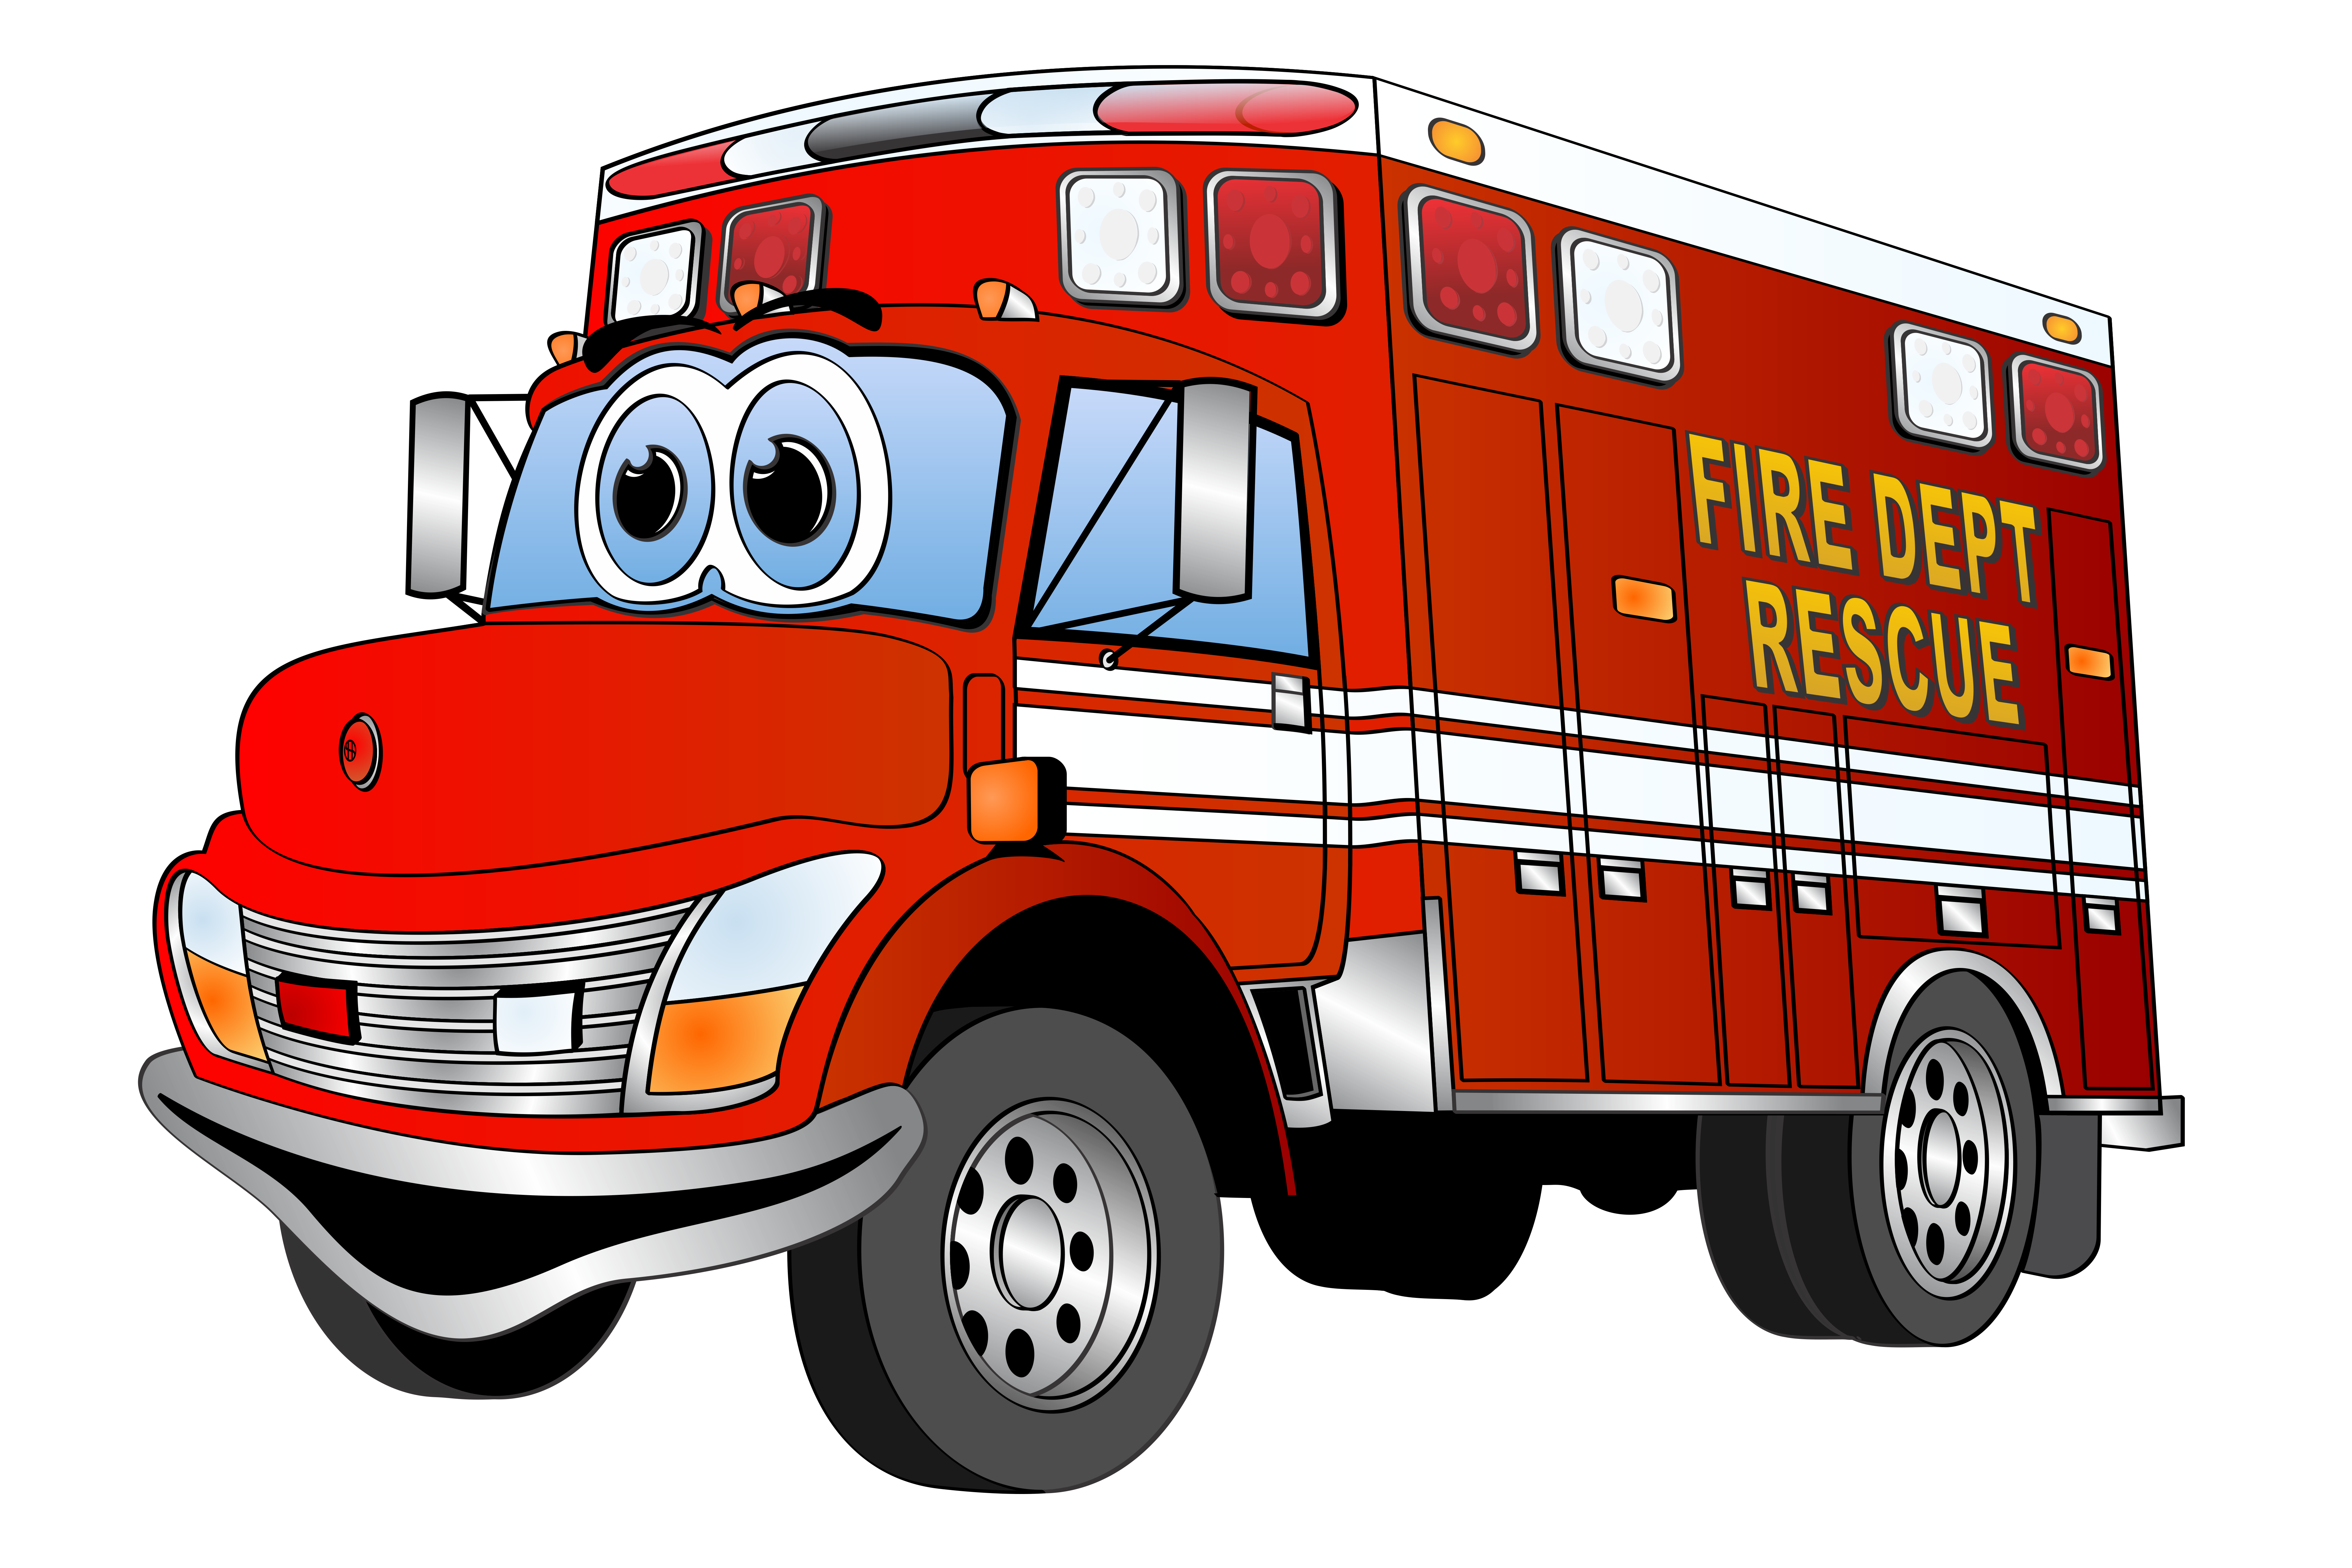 Picture Of Firetruck - ClipArt .-Picture Of Firetruck - ClipArt .-10